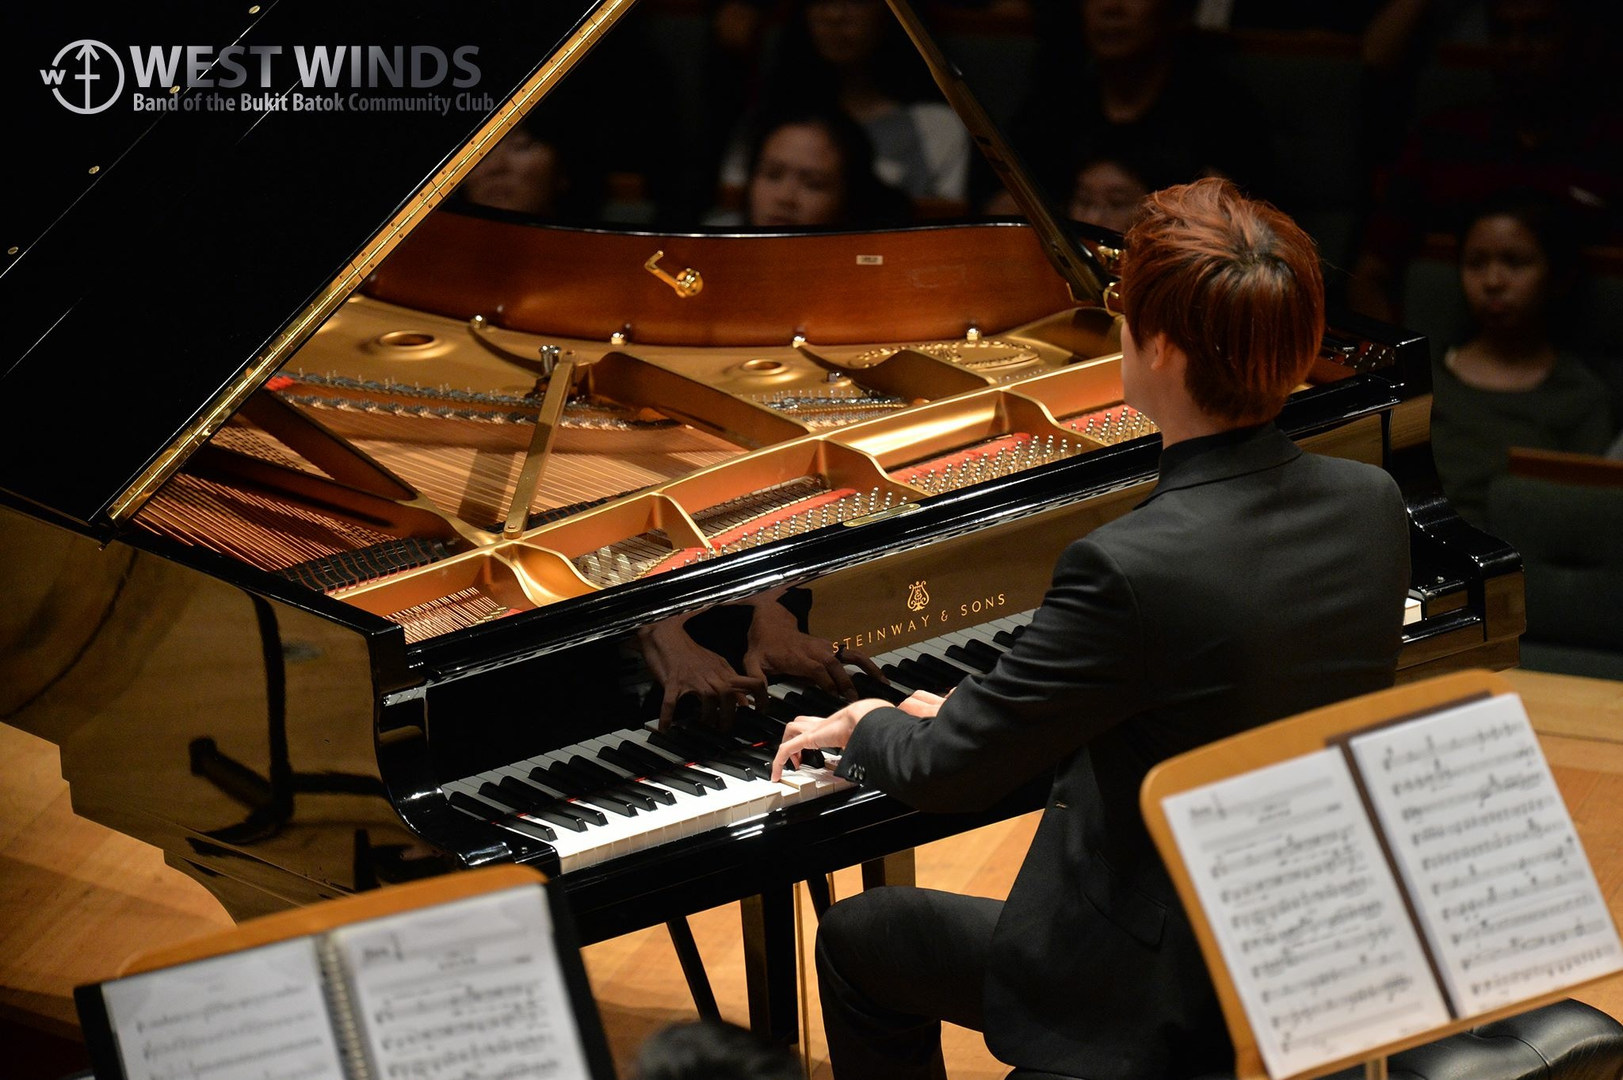 18/01/21 (1/2) - West Winds 25th Anniversary Concert